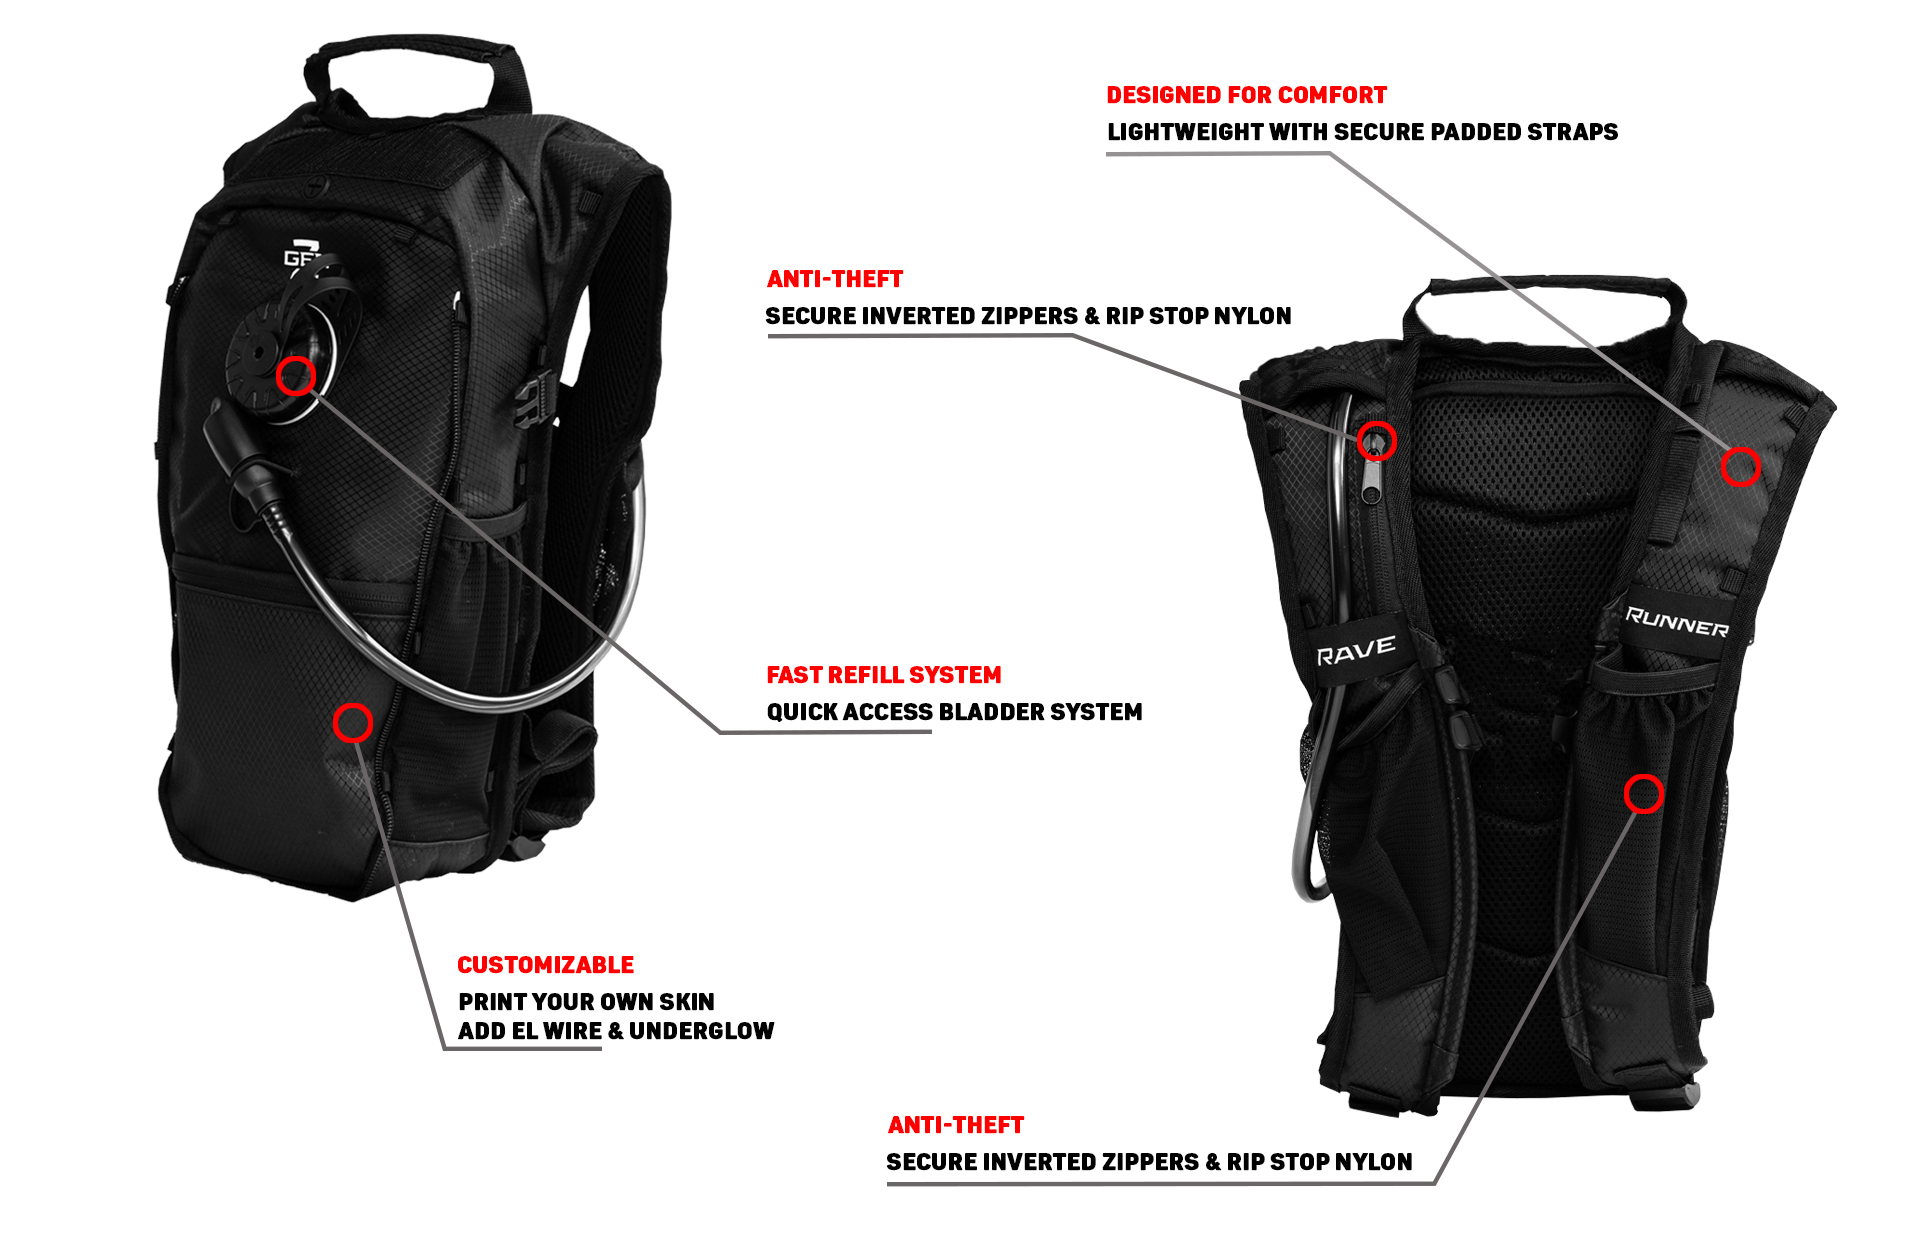 The RaveRunner Hydration Pack. Perfect for festivals, running, and all other outdoor adventures. Made to be anti theft, customizable, and easily accessible. The best festival hydration pack for hydration pack rave.